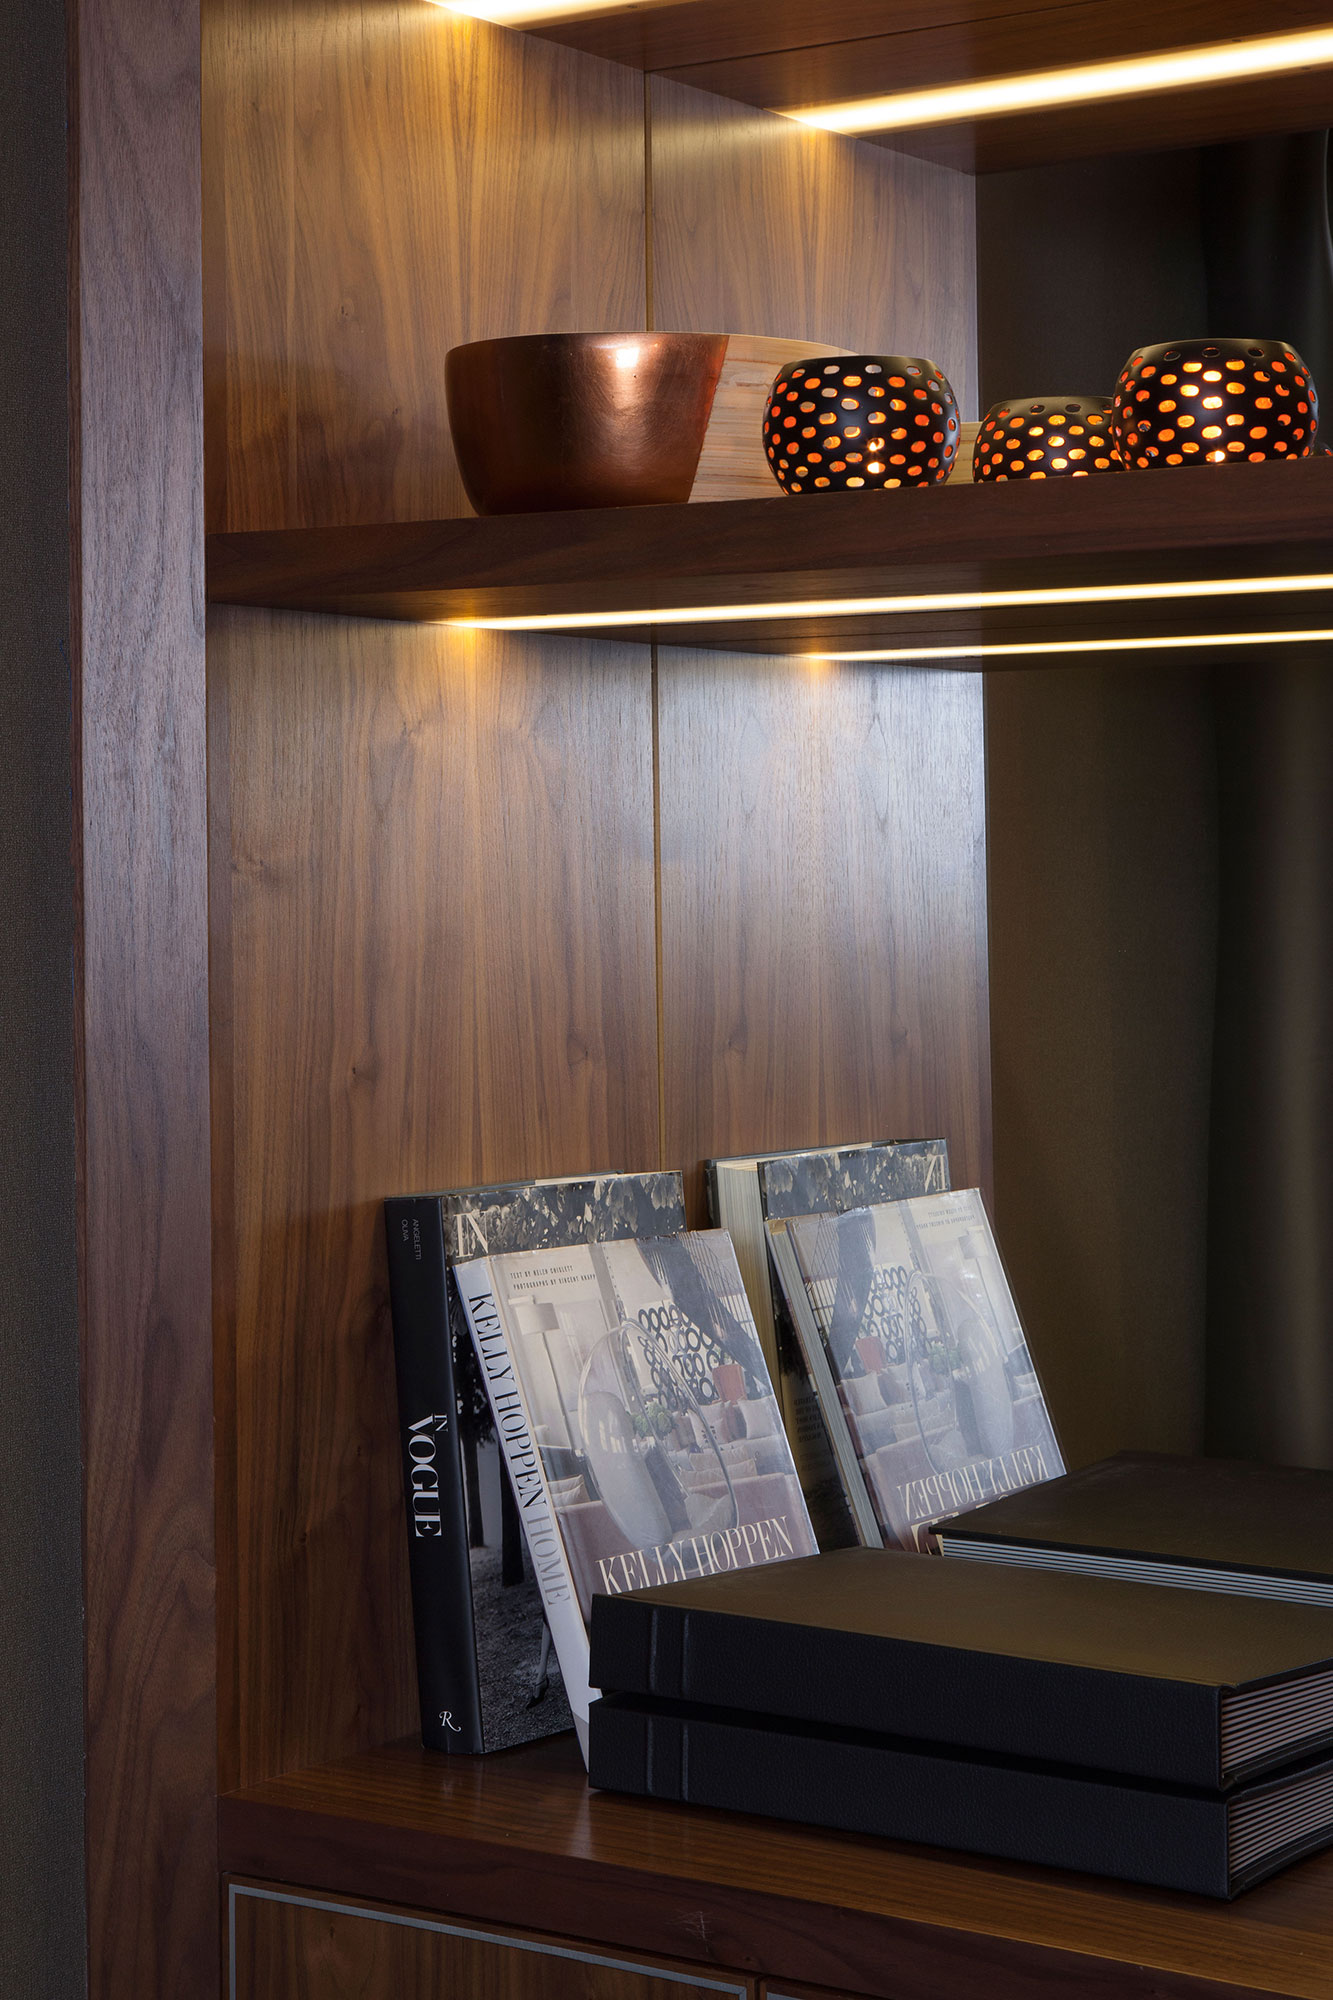 bespoke timber joinery for display of books and objets